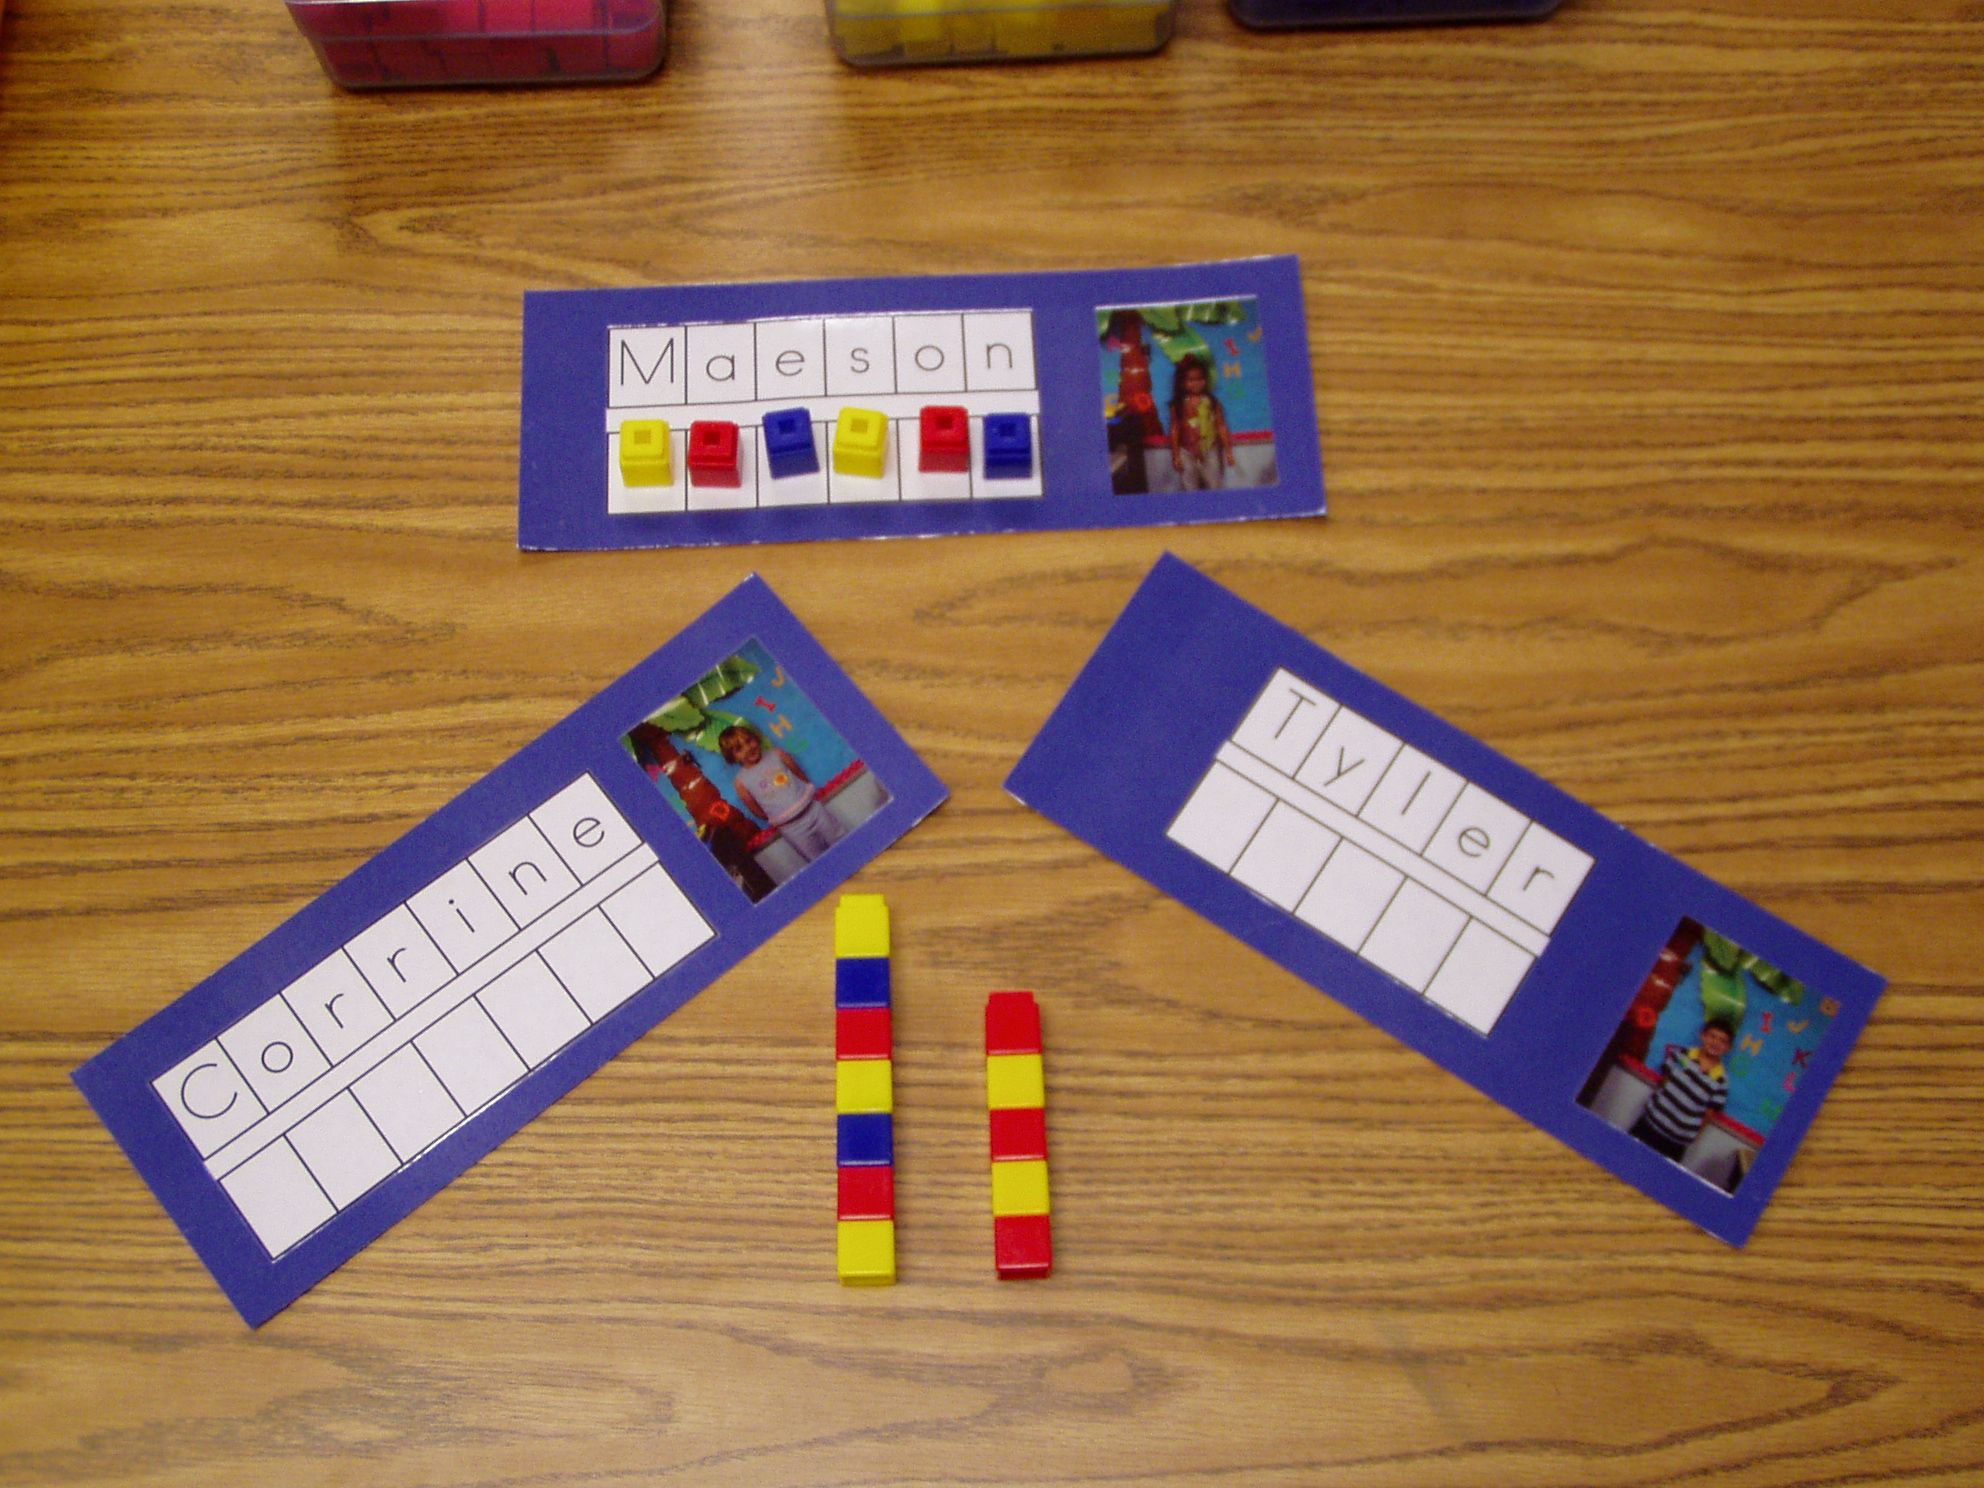 Picture Name Card Activities 1 Sort Into Groups Boys